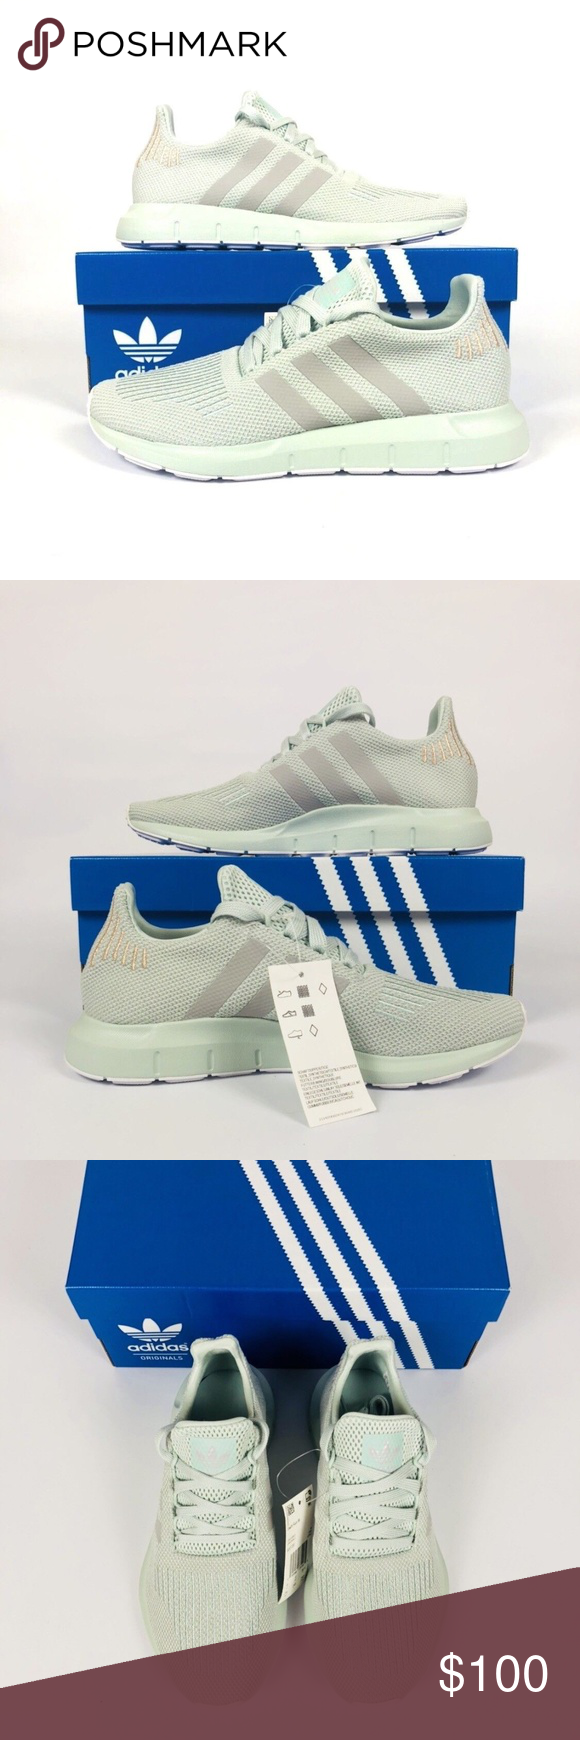 fd4f5401cf320 Adidas Women s Originals Swift Vapour NWT